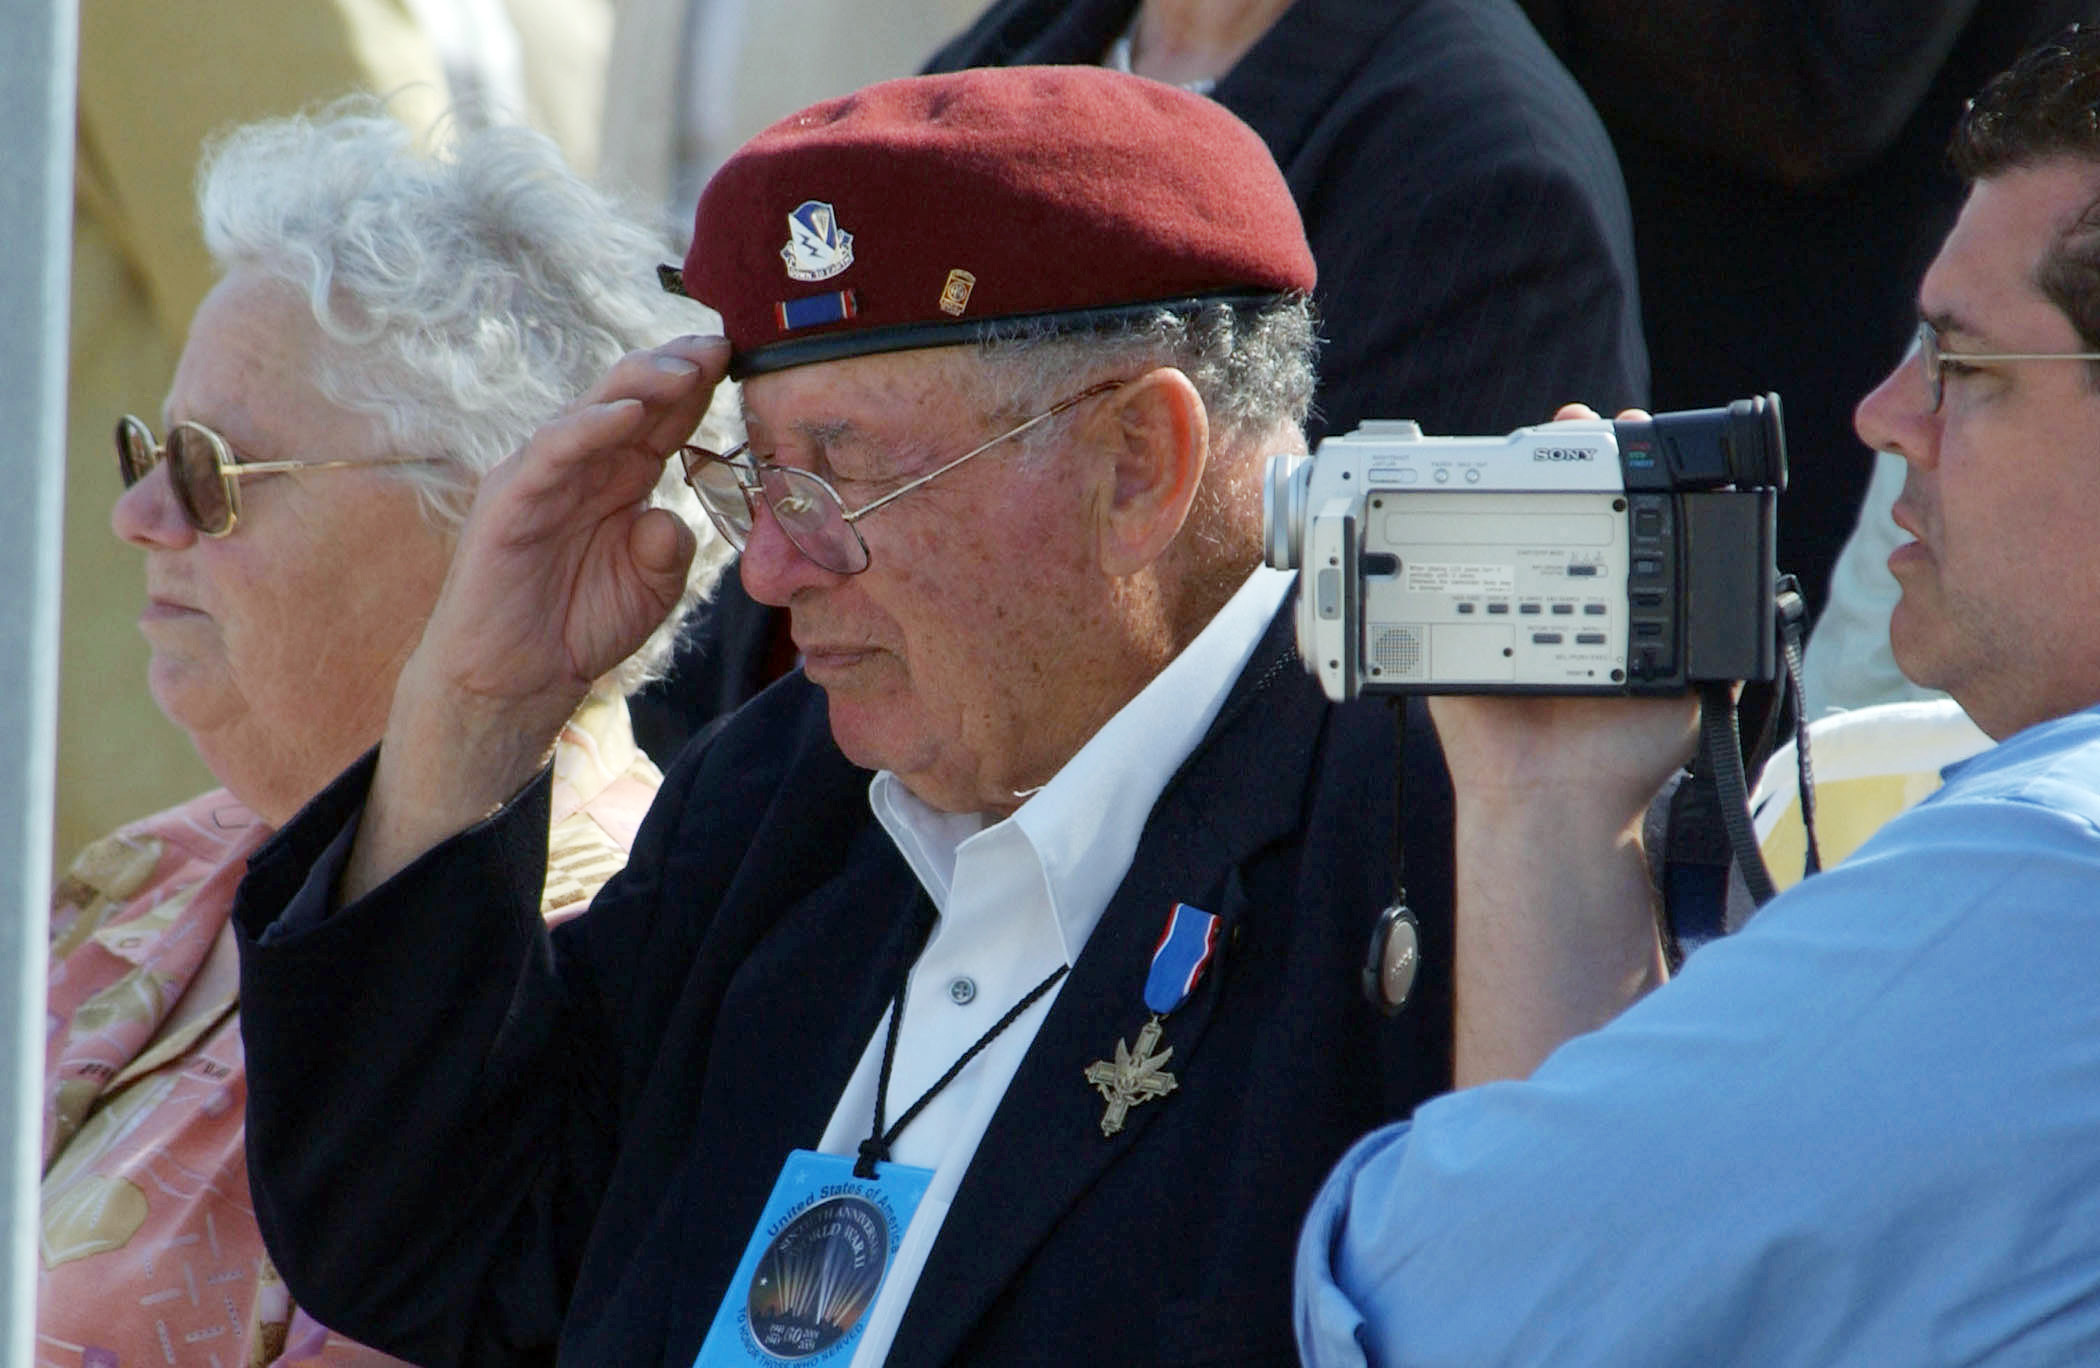 A US Army (USA) 82nd Airborne Division World War II veteran, displaying his earned Distinguished Service Cross (DSC), renders a salute during the playing of the National Anthems at Utah Beach during a ceremony commemorating the 60th Anniversary of the D-Day landings